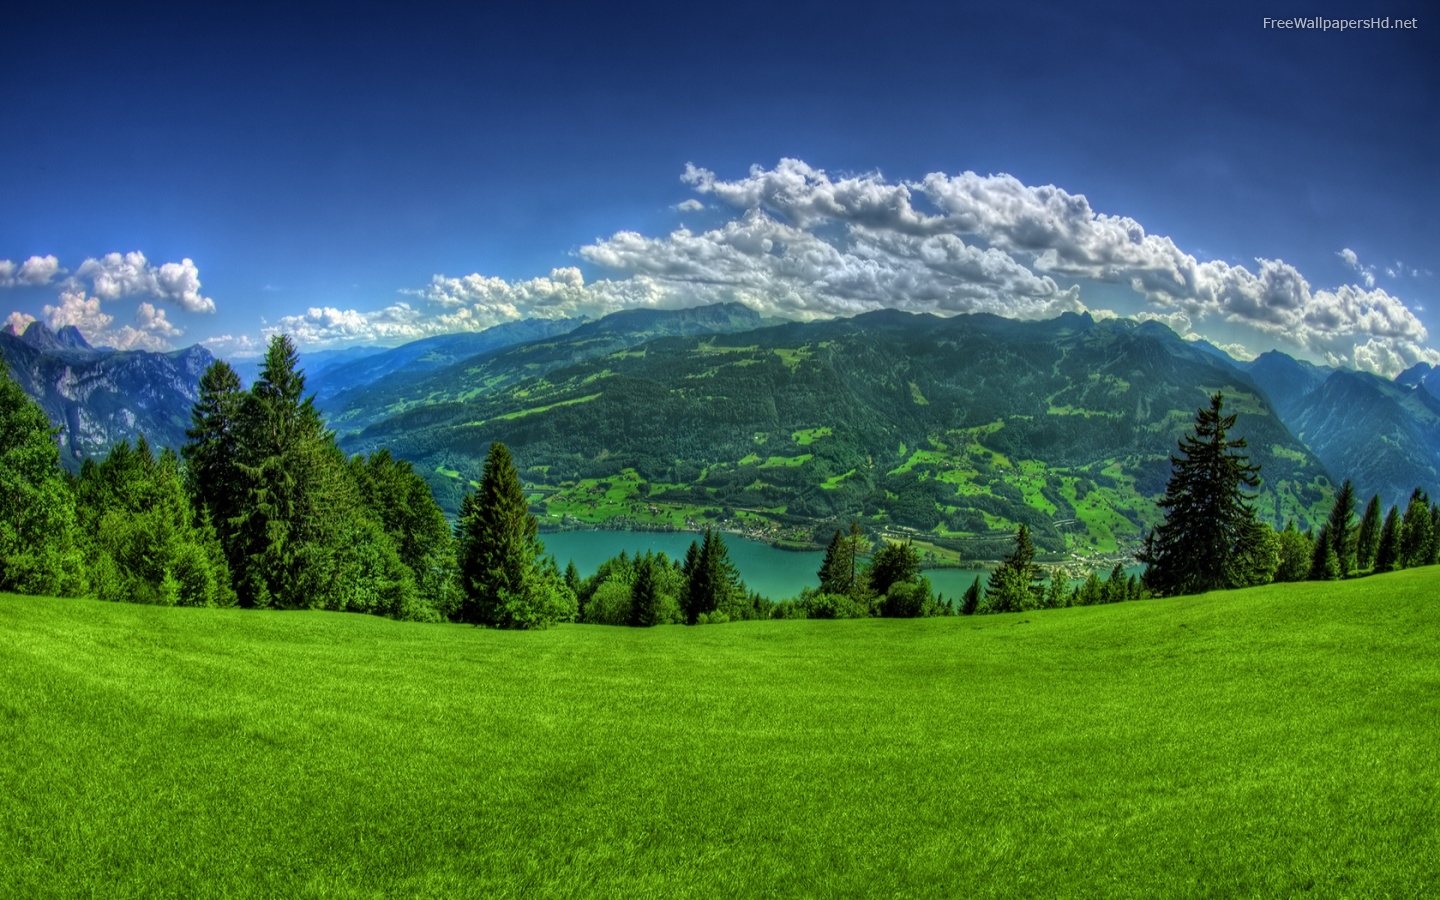 Mountain Pictures: Mountains Landscape